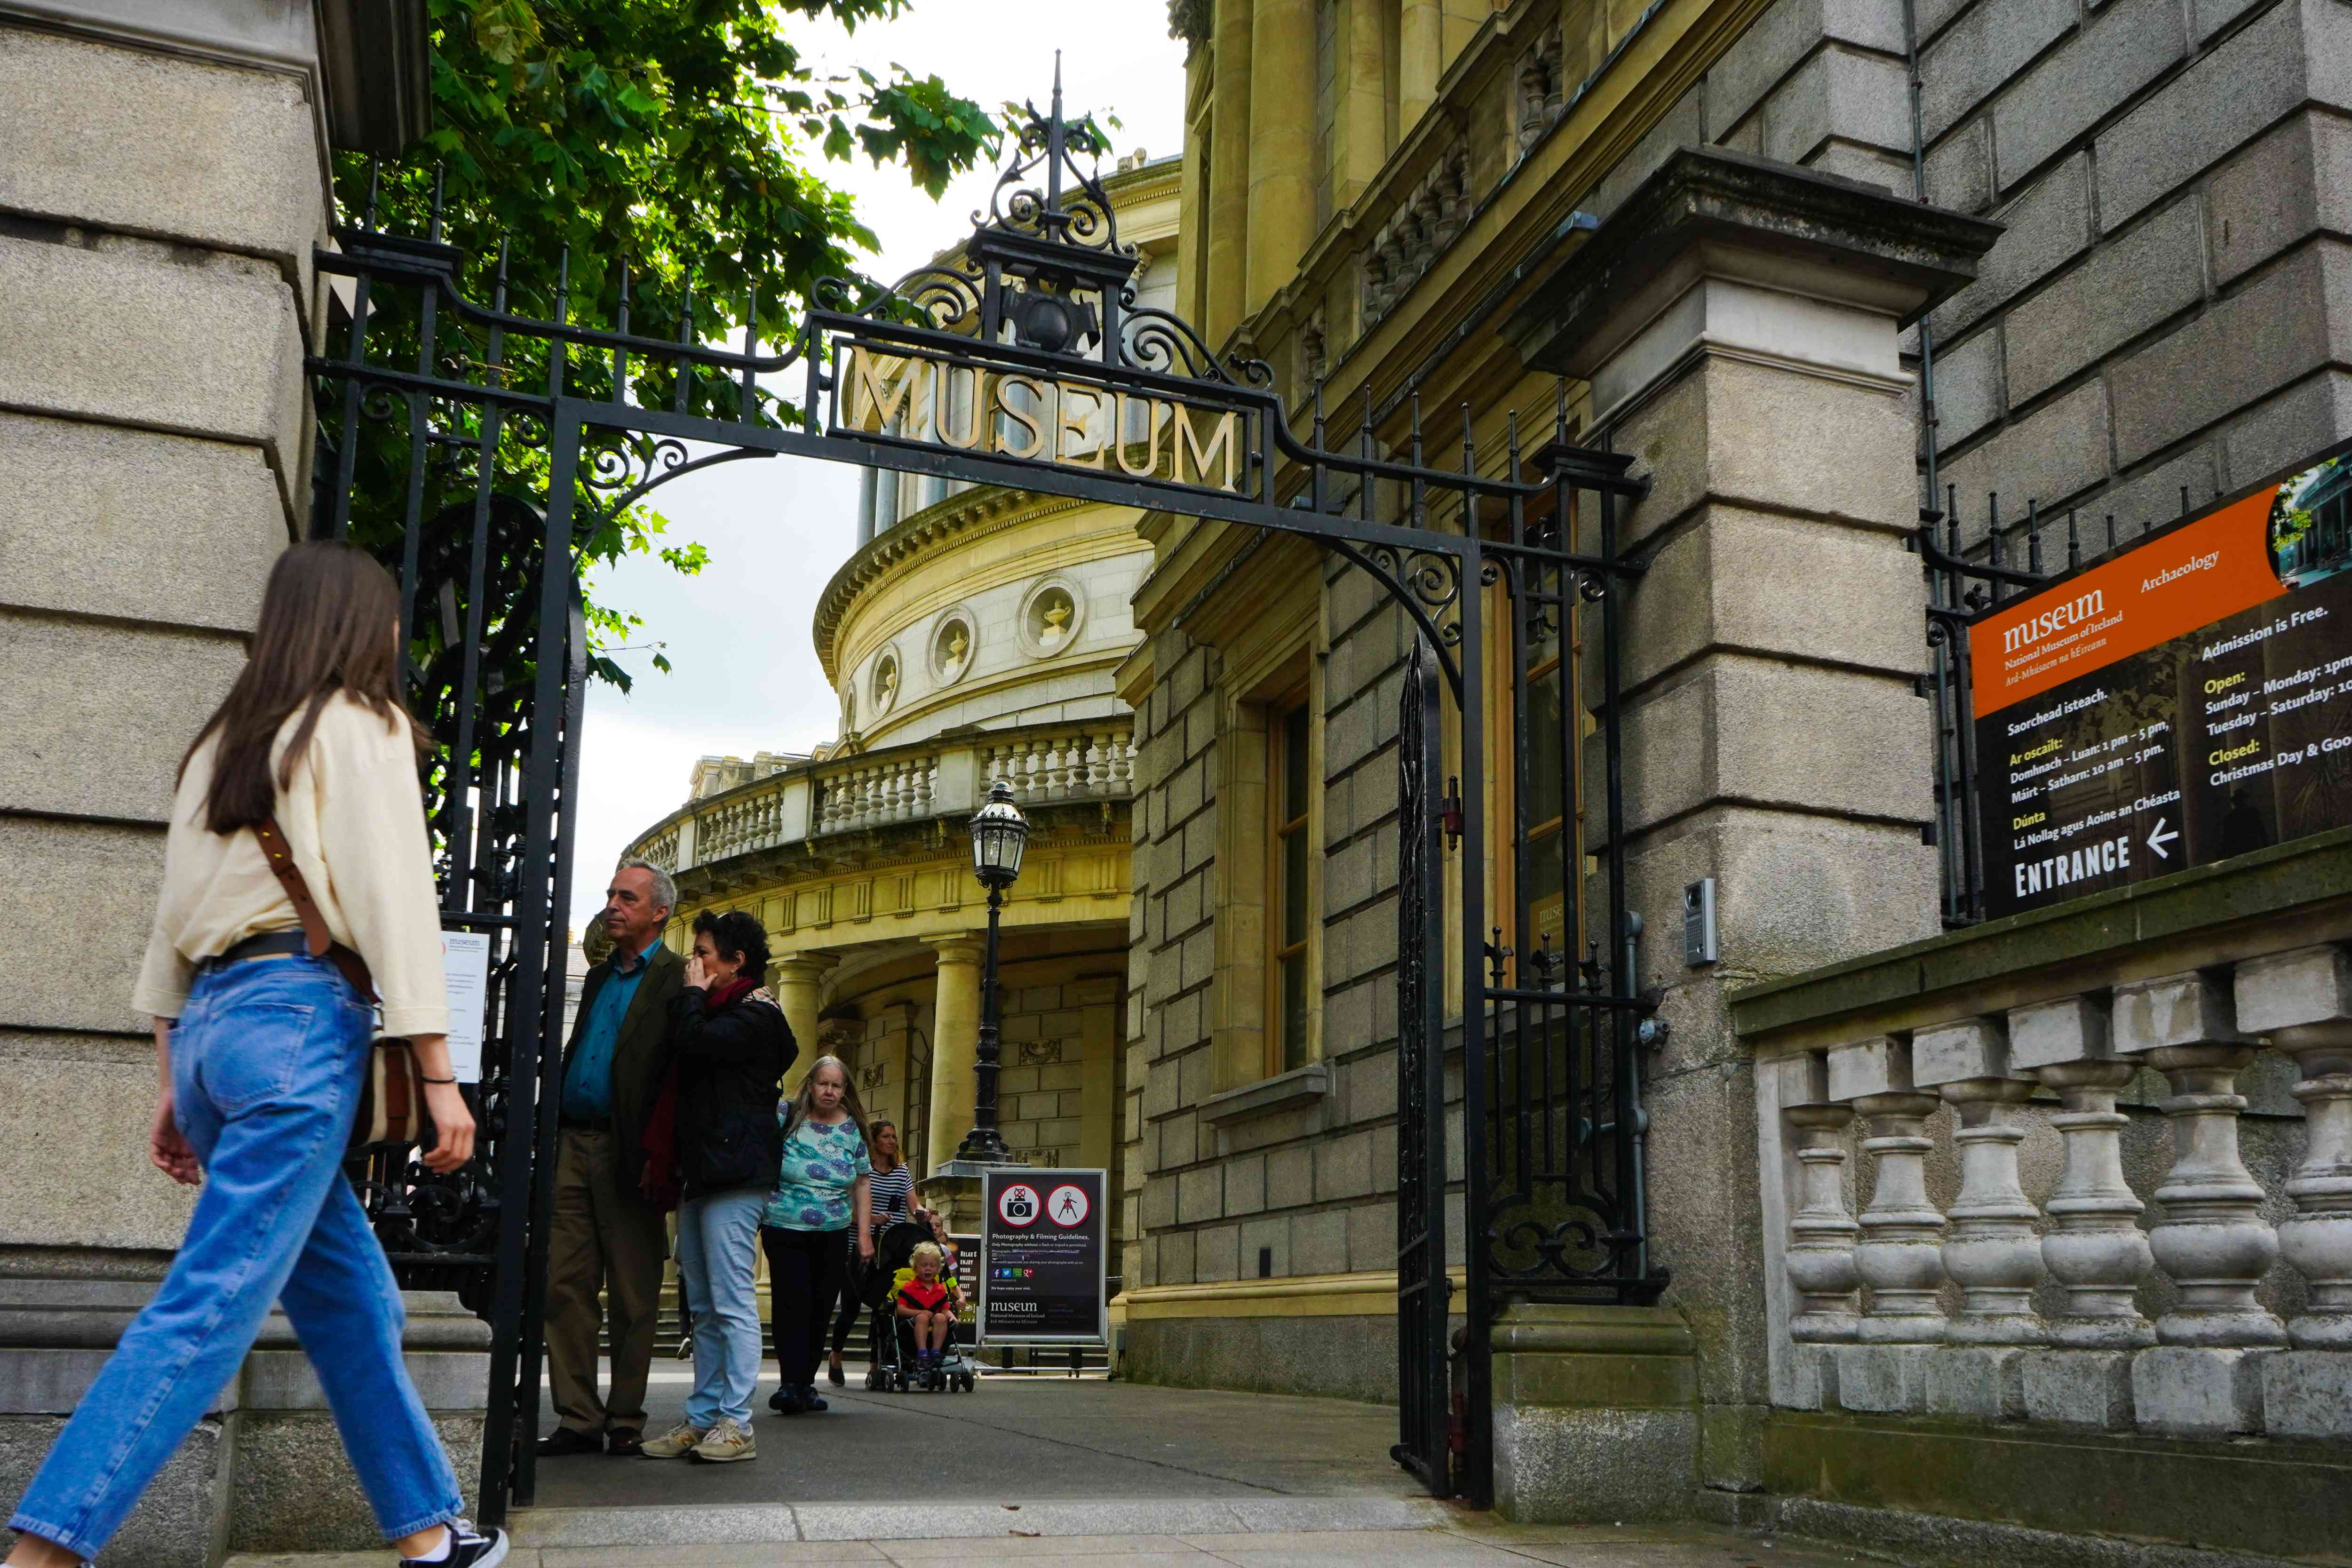 The National Museum of Ireland in Dublin